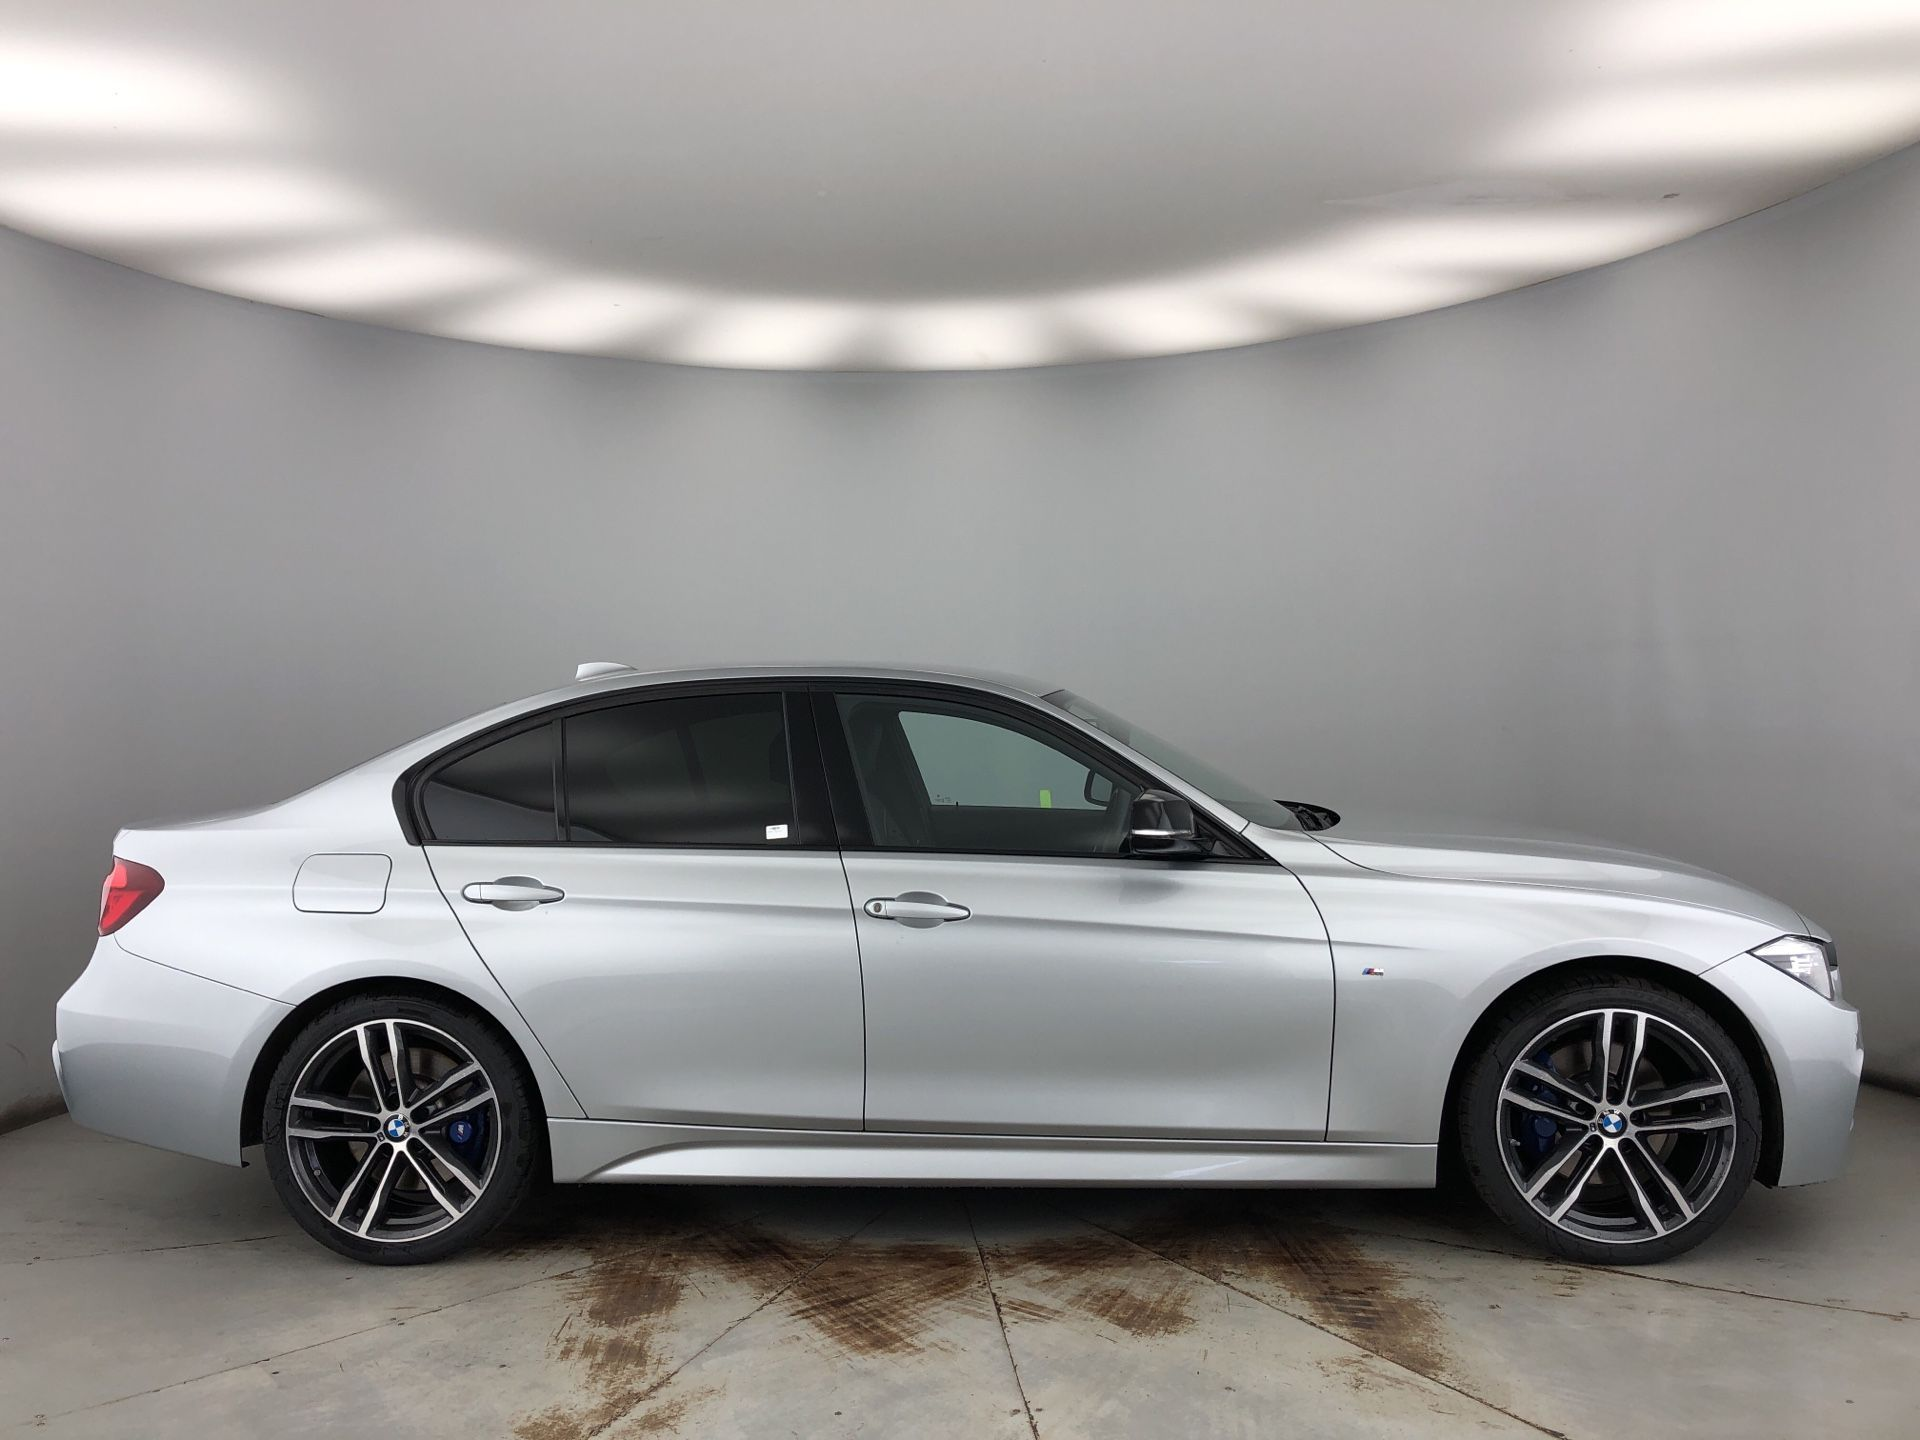 Image 3 - BMW 320d M Sport Shadow Edition Saloon (YK68BSO)